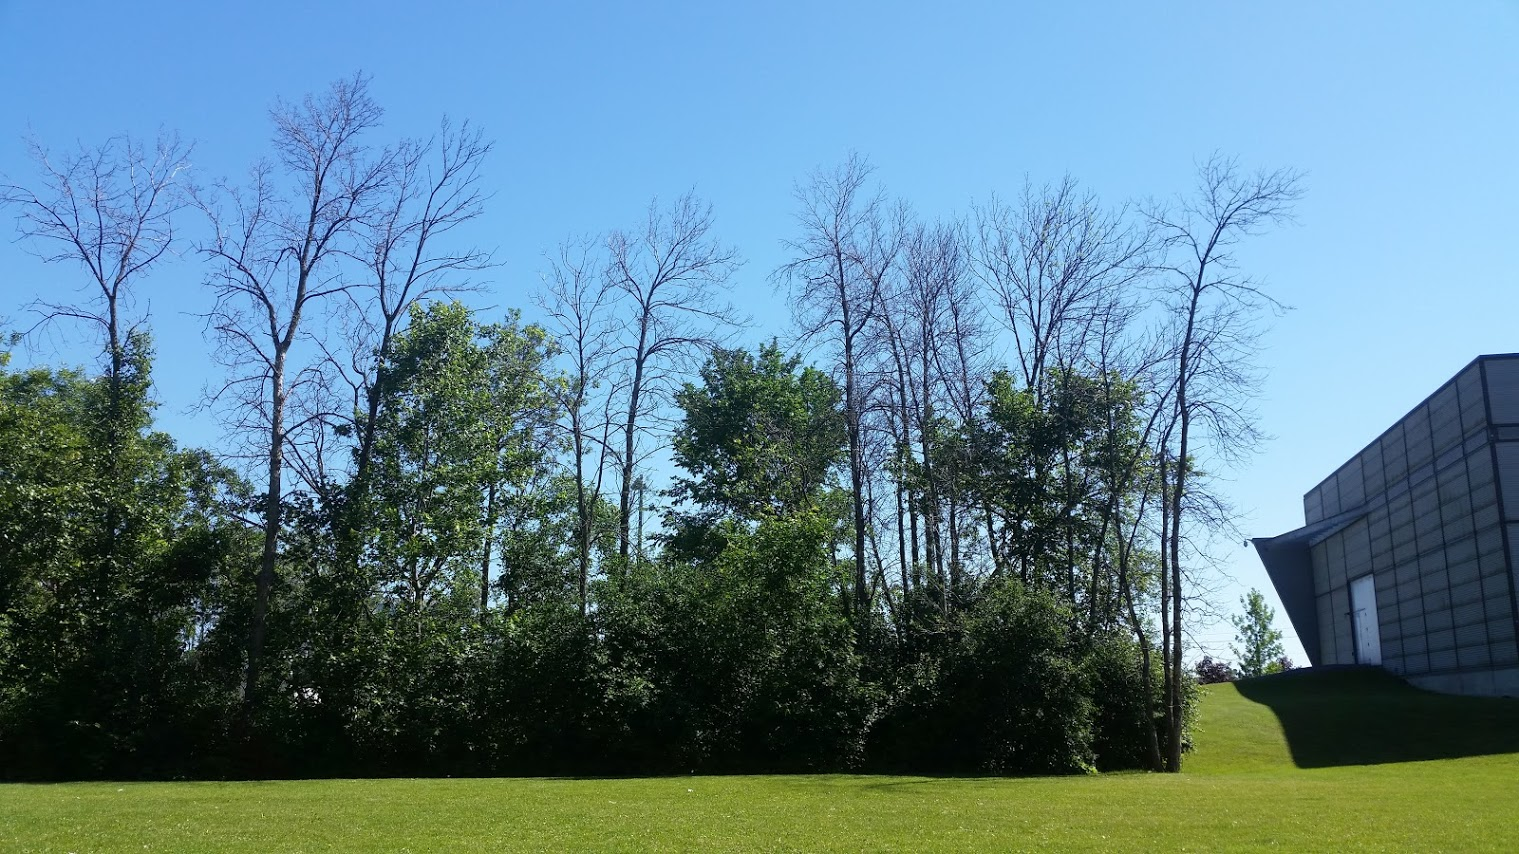 Photo of damages observed on trees and caused by insects in a wooded area.